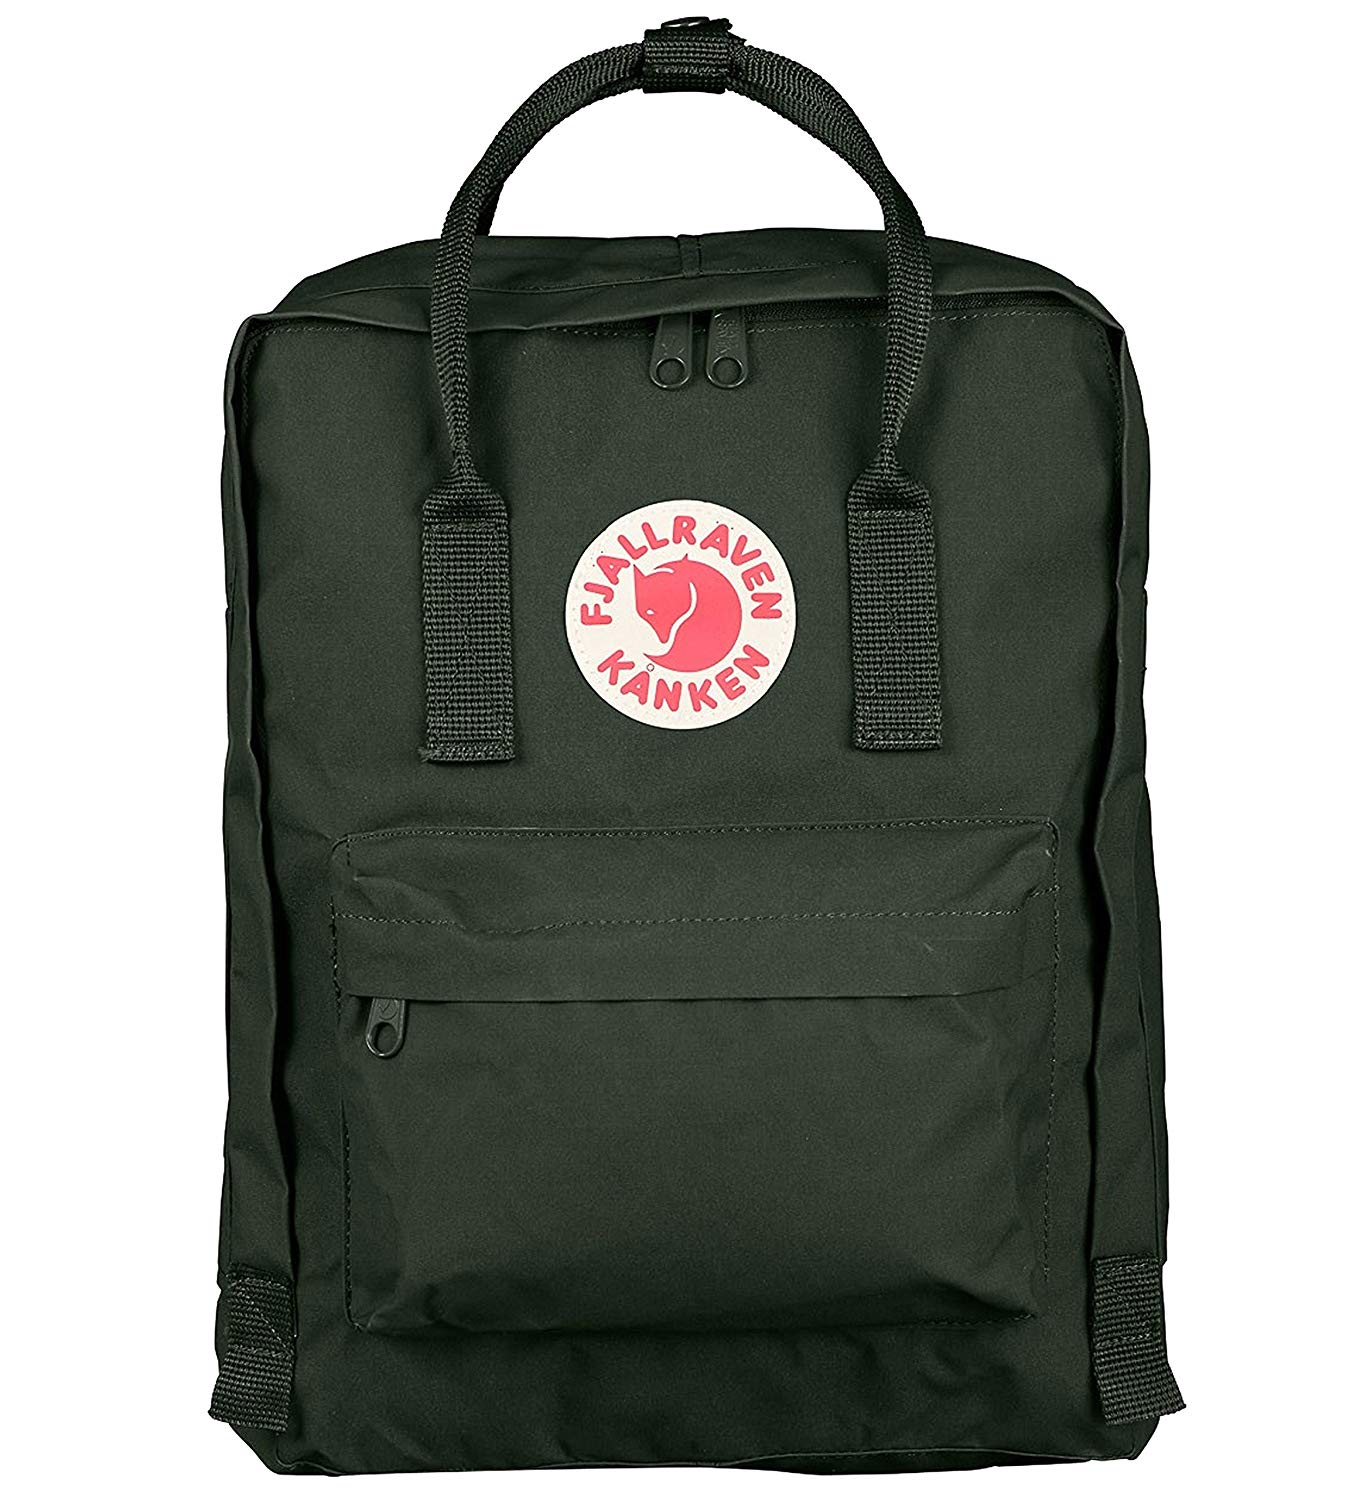 Fjallraven - Kanken Classic Backpack for Everyday - Deep Forest